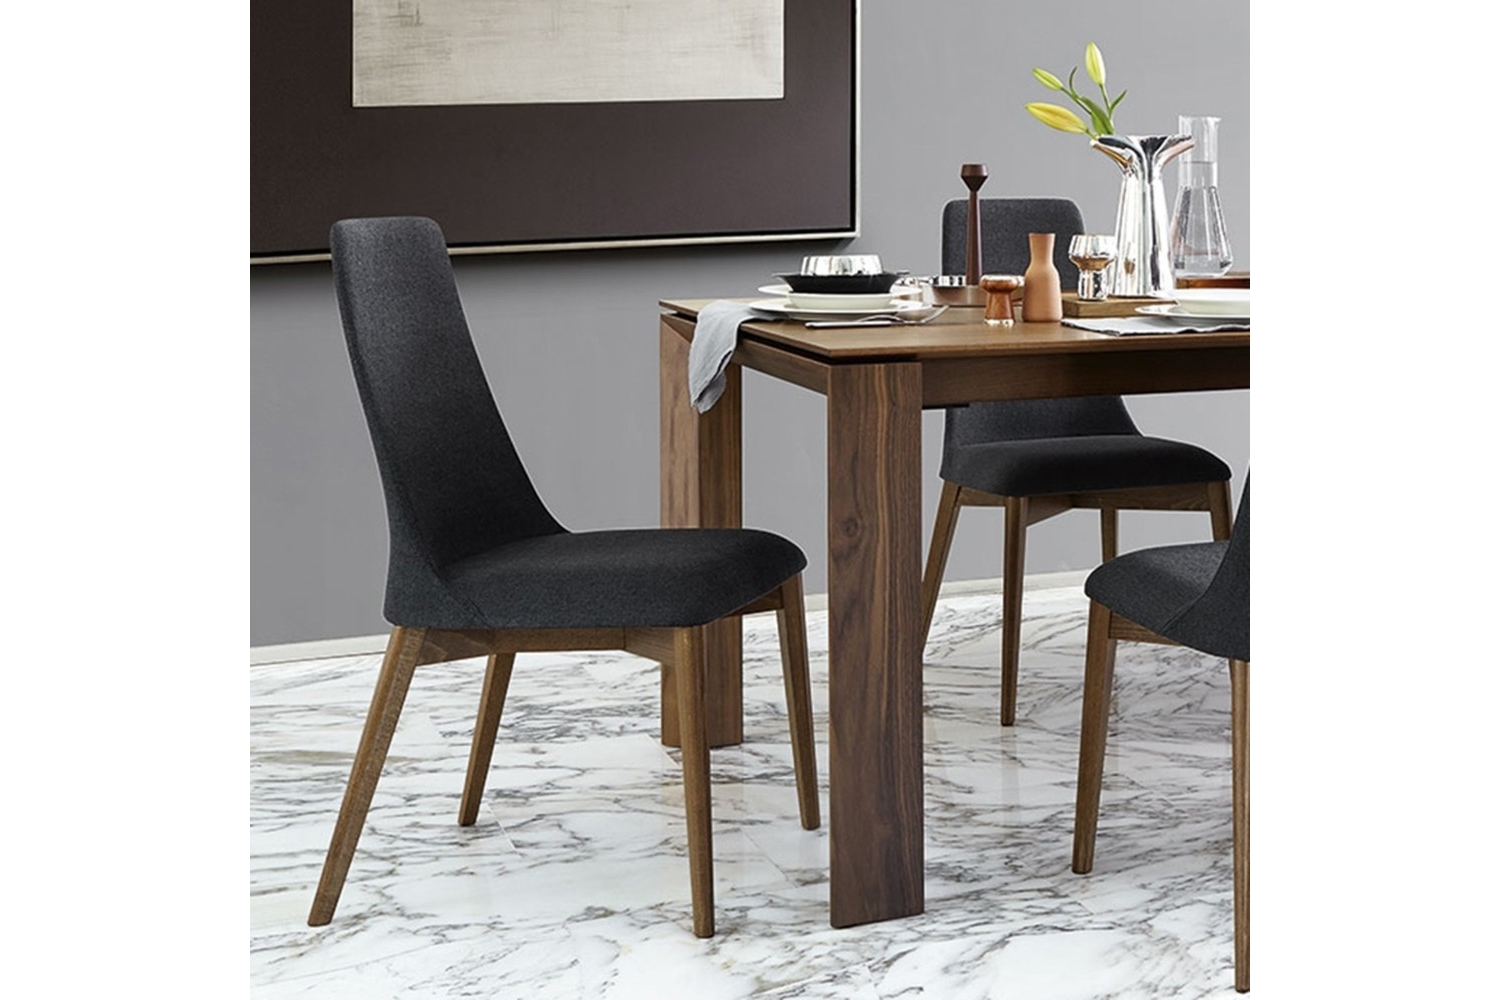 etoile denver dining chair by calligaris CS 1423 etoile-denver-dining-chair-by-calligaris-CS-1423.jpg Ines Dining Chair Calligaris